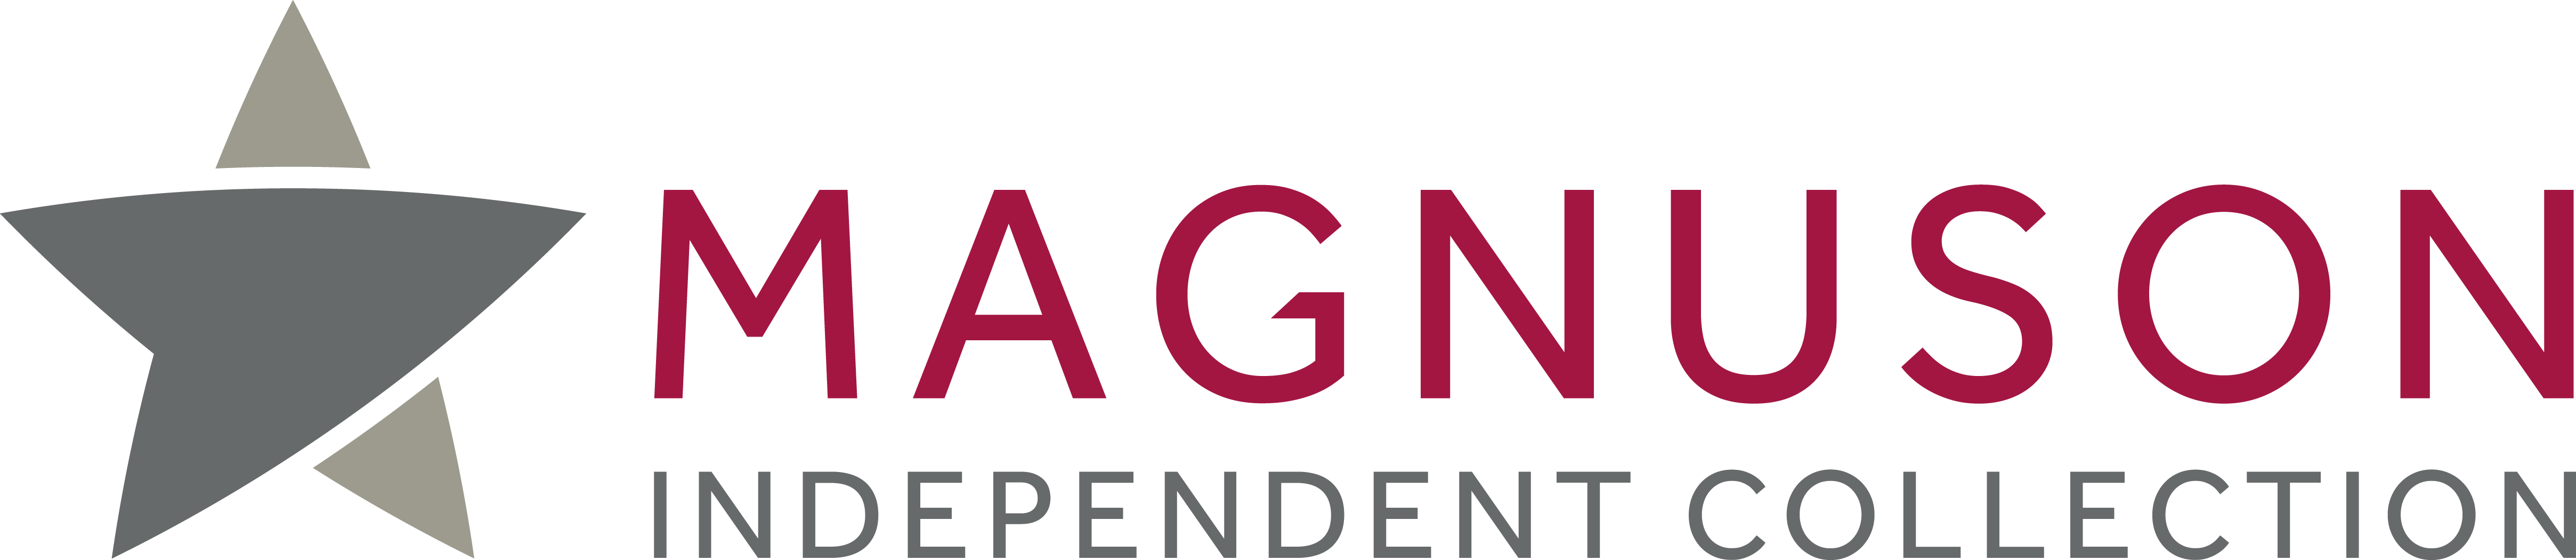 Magnuson Independentlogo;